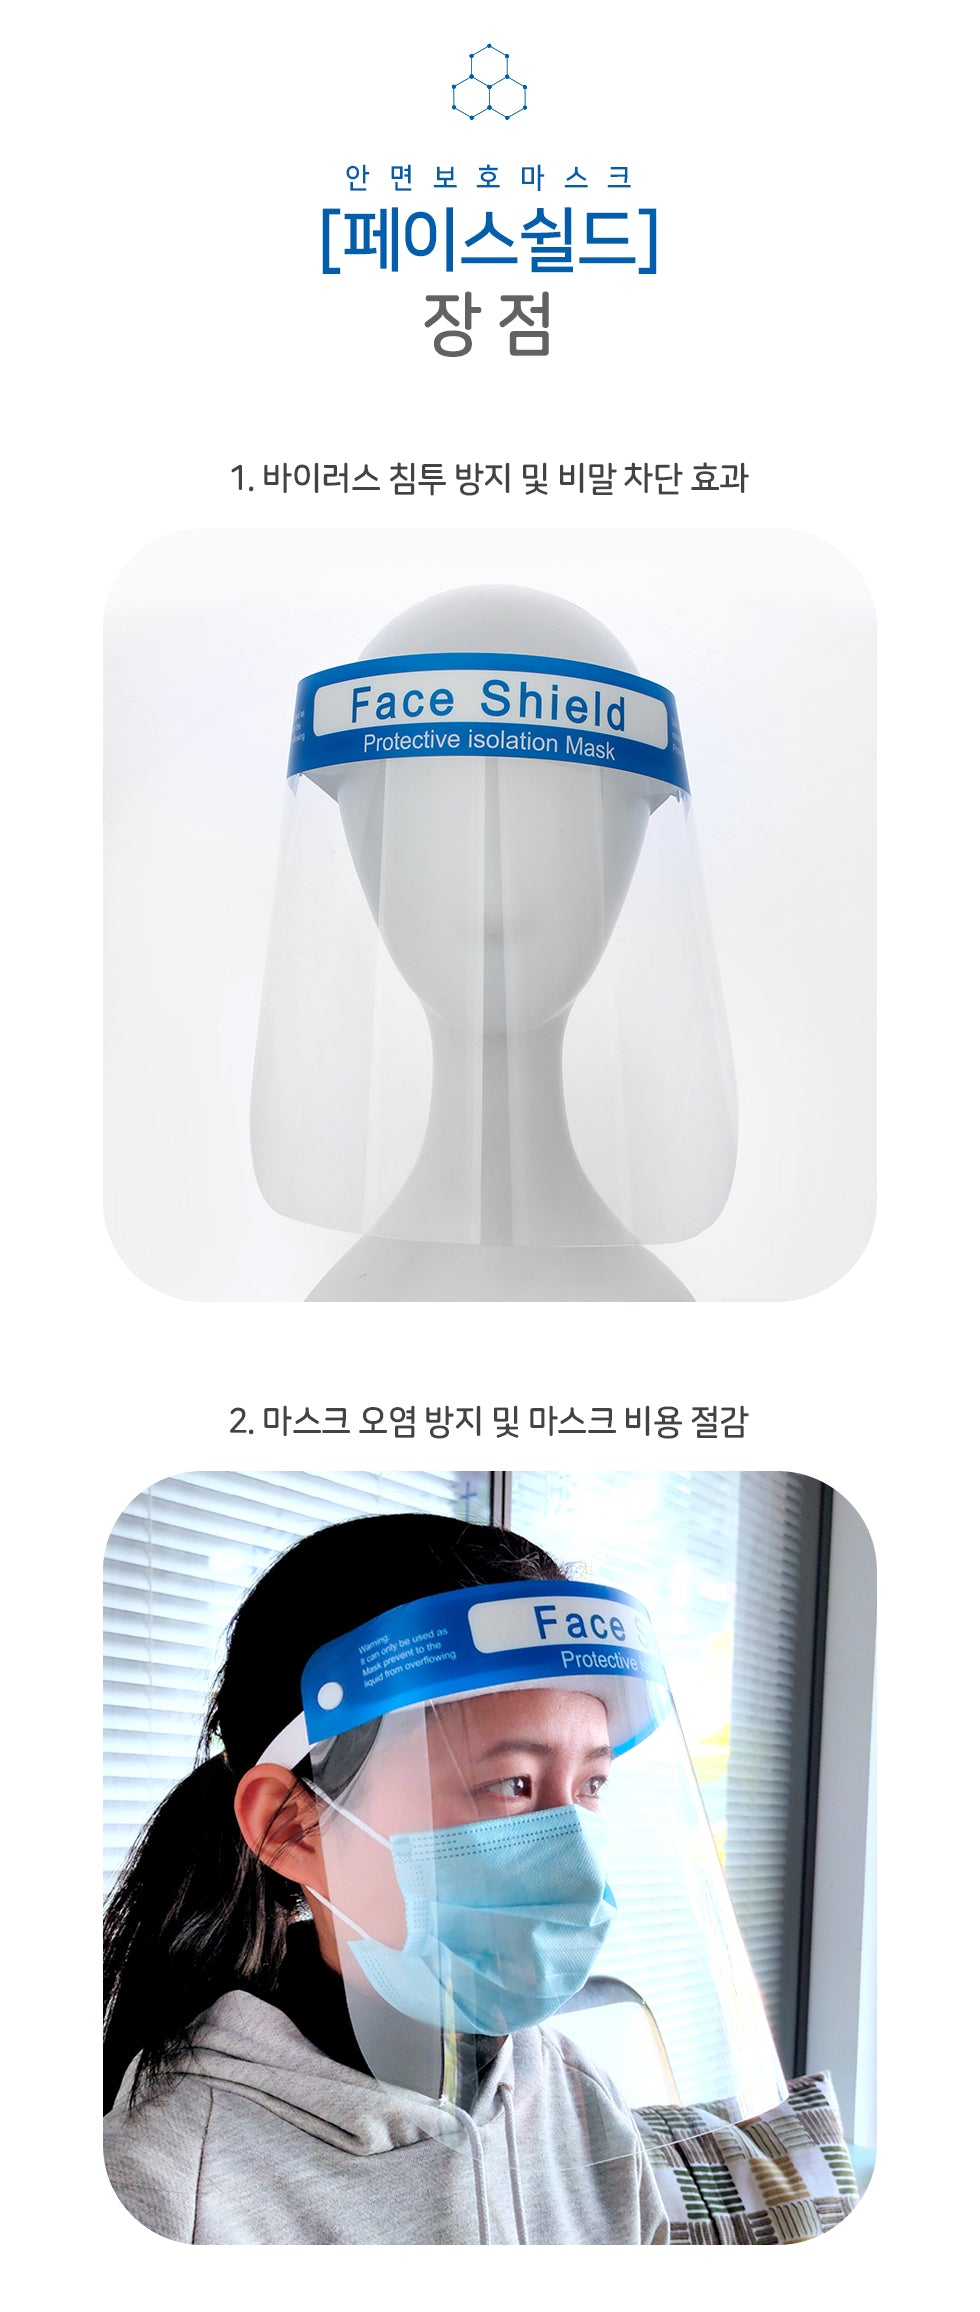 Face Shield Protective Isolation Mask 2 Pcs